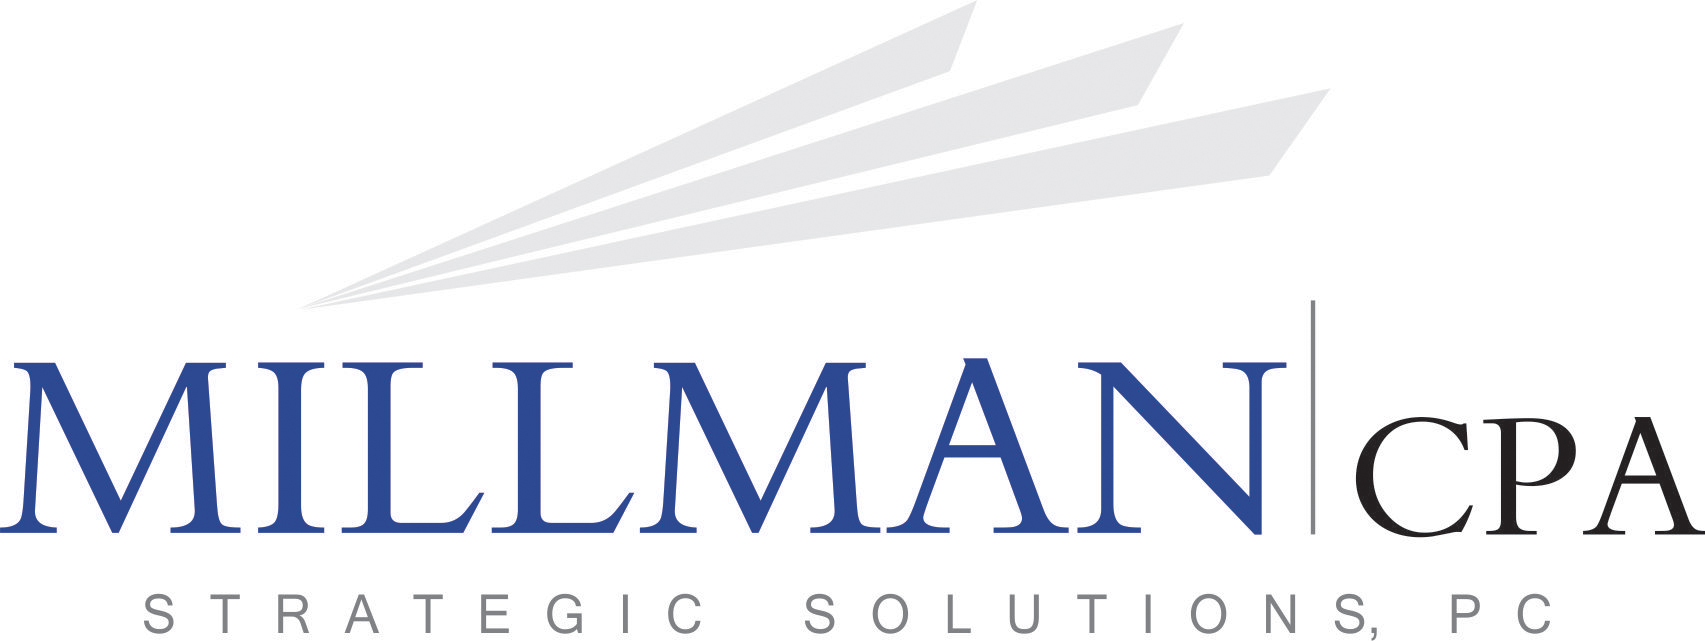 Millman CPA Strategic Solutions, PC